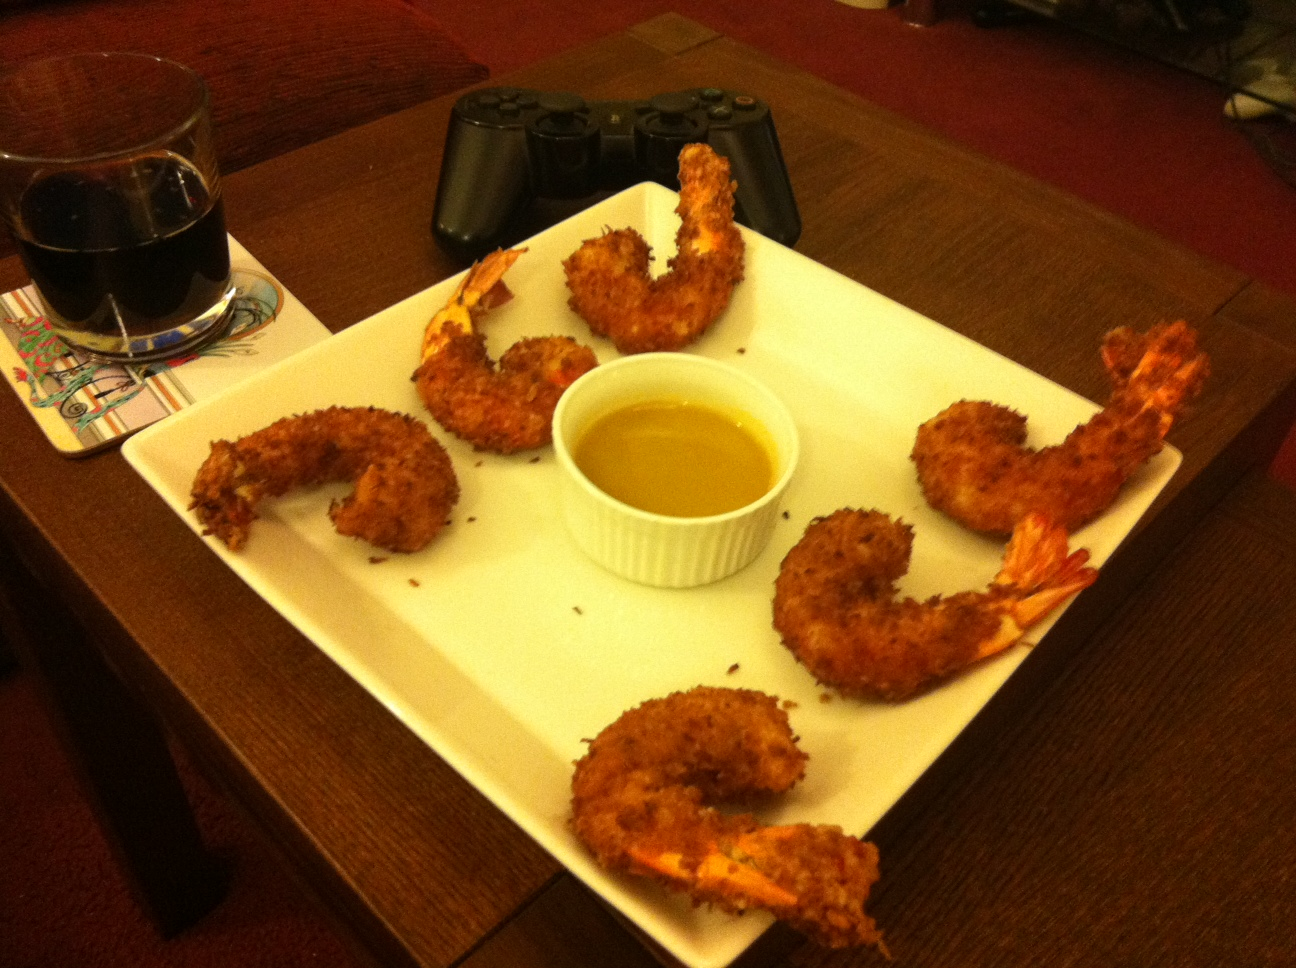 Get Stuffed!: Coconut Shrimp with Orange Mustard Dipping Sauce recipe